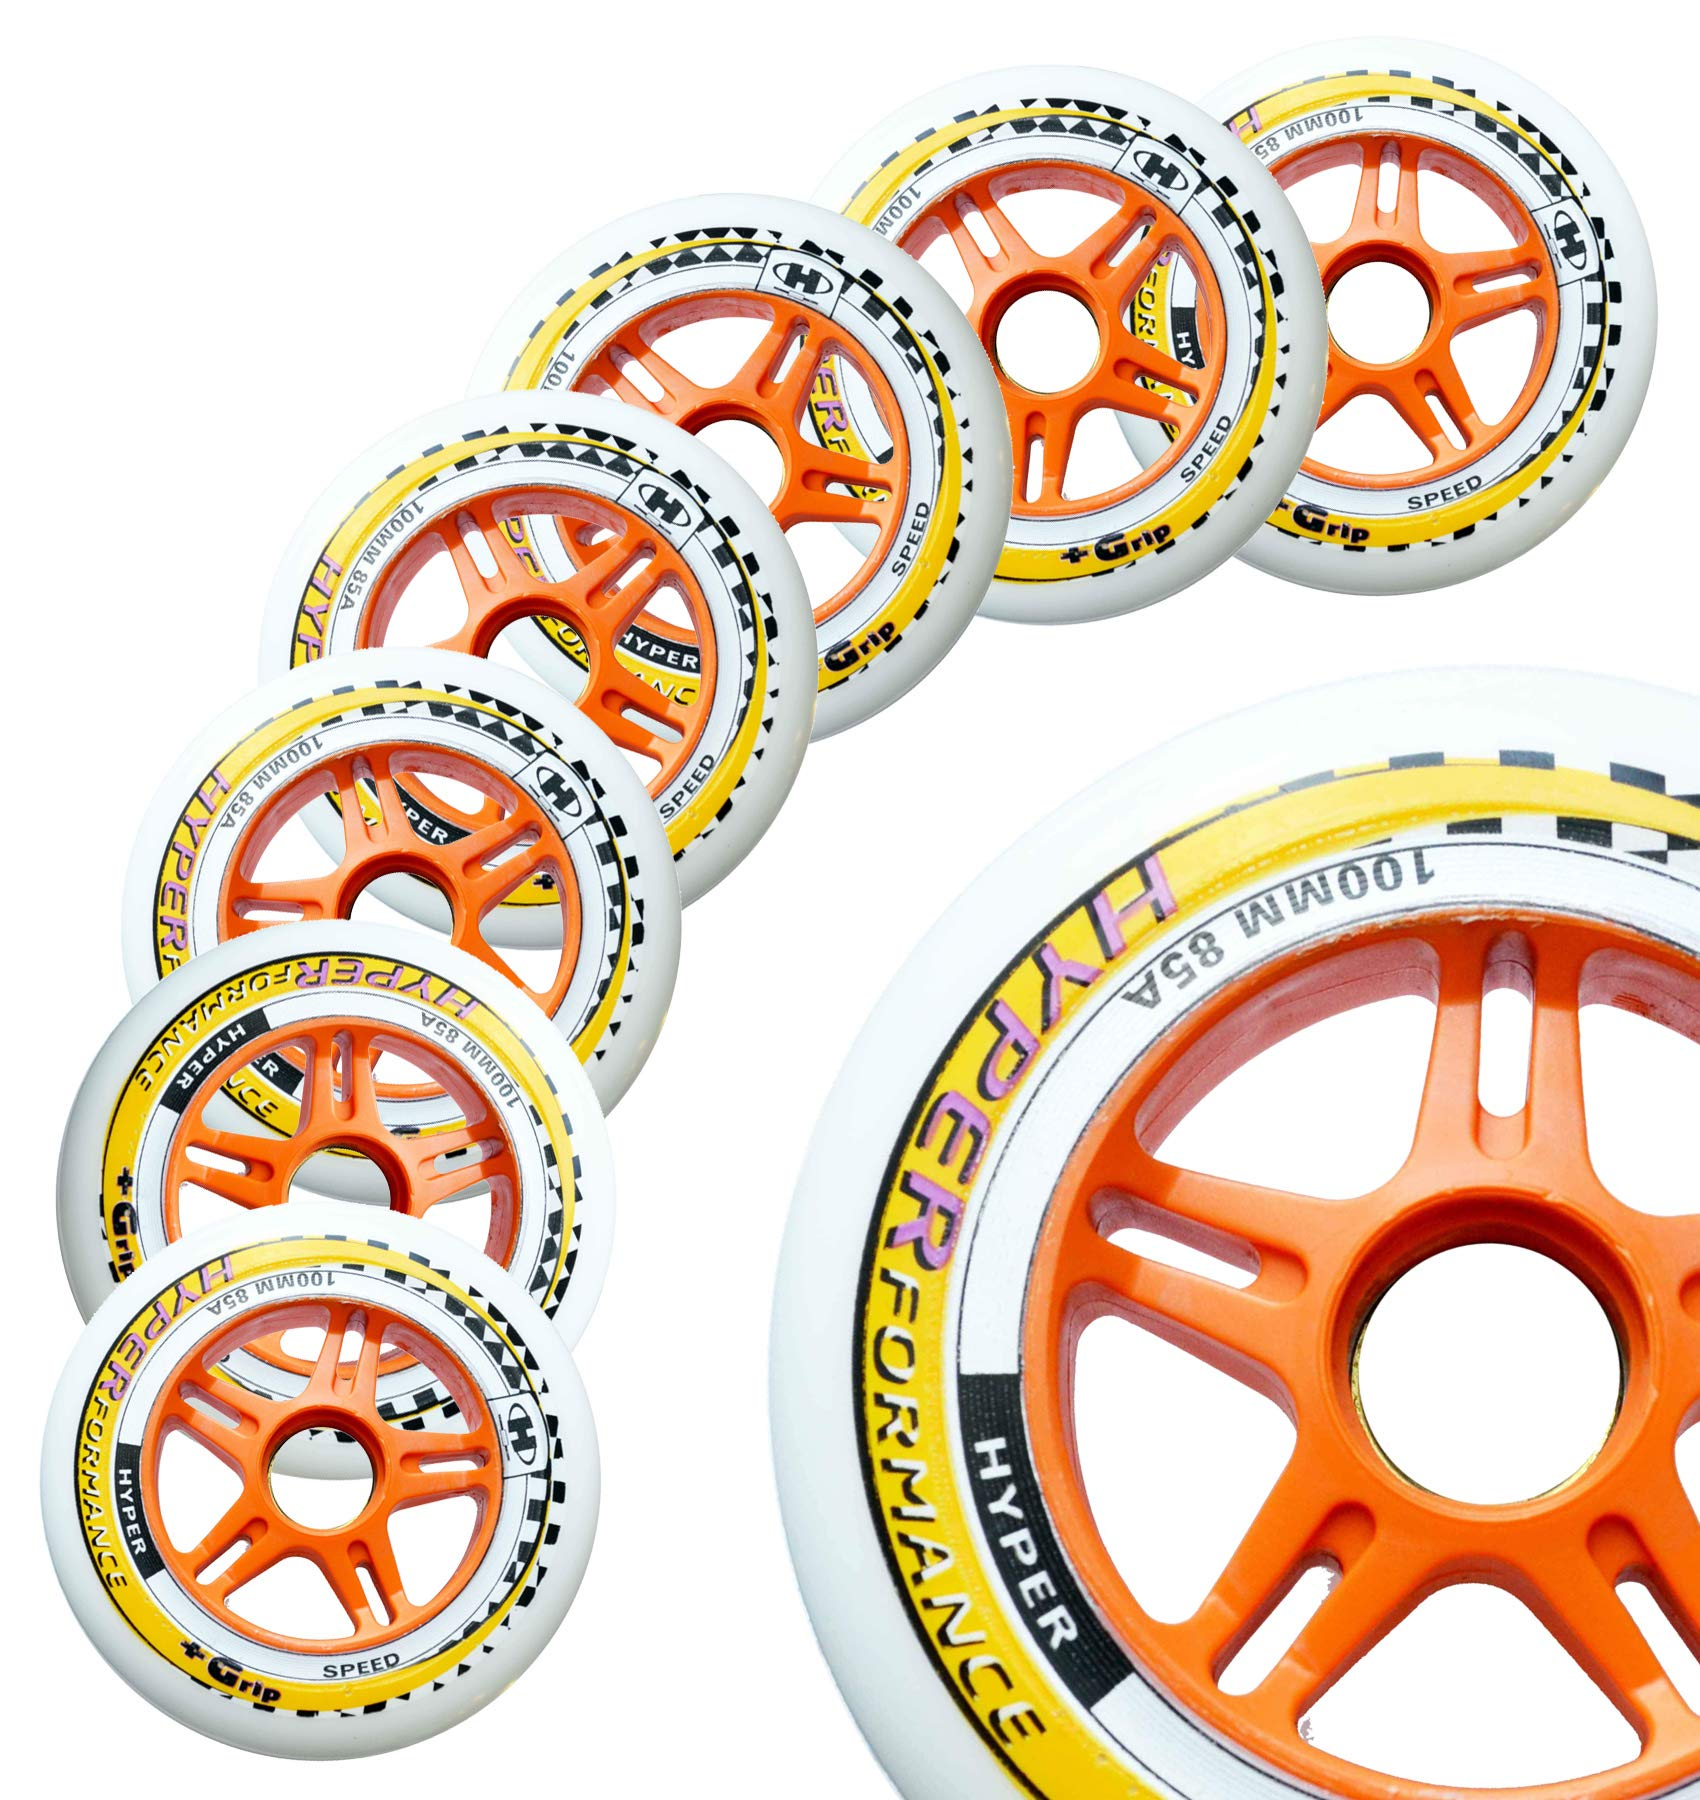 Inline Race Skate Wheels Hyper HYPERFORMANCE+G - 8 Wheels - 85A - Sizes: 84MM, 90MM, 100MM, 110MM - Speed Skating, Fitness and Outdoor Recreational Wheels (100MM)